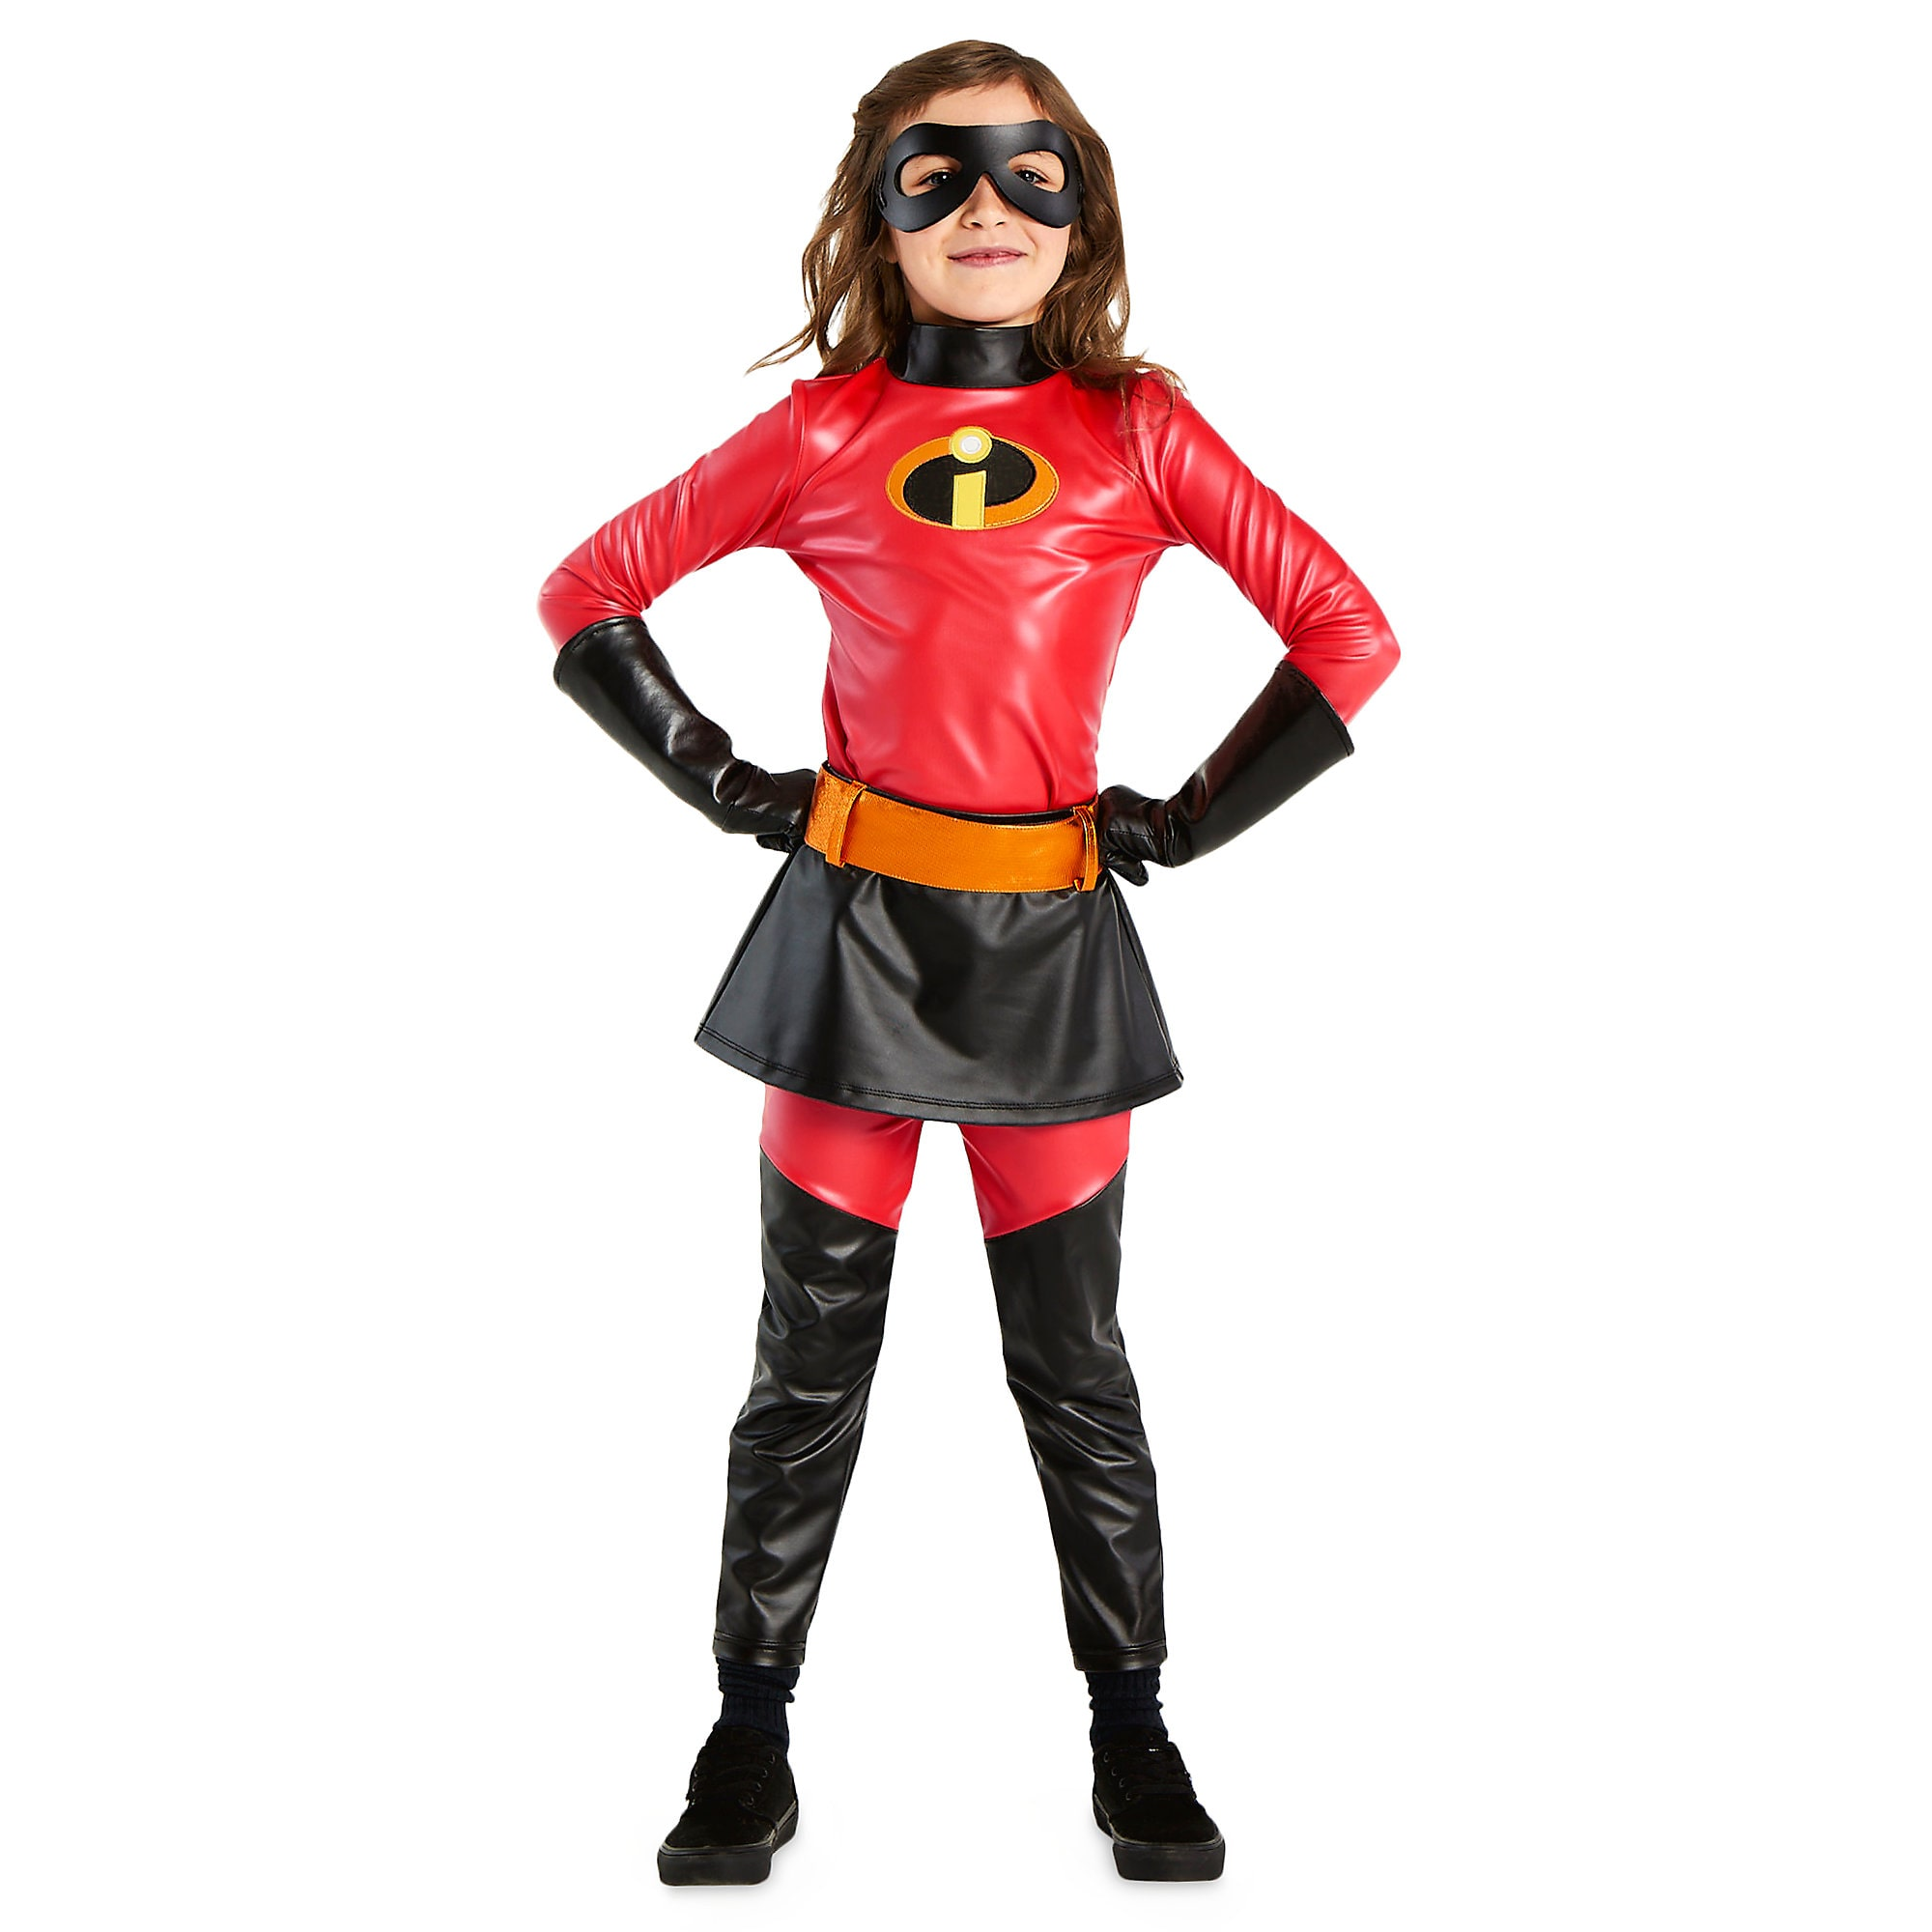 Incredibles 2 Family Costume Collection  sc 1 st  shopDisney & Incredibles 2 Family Costume Collection | shopDisney